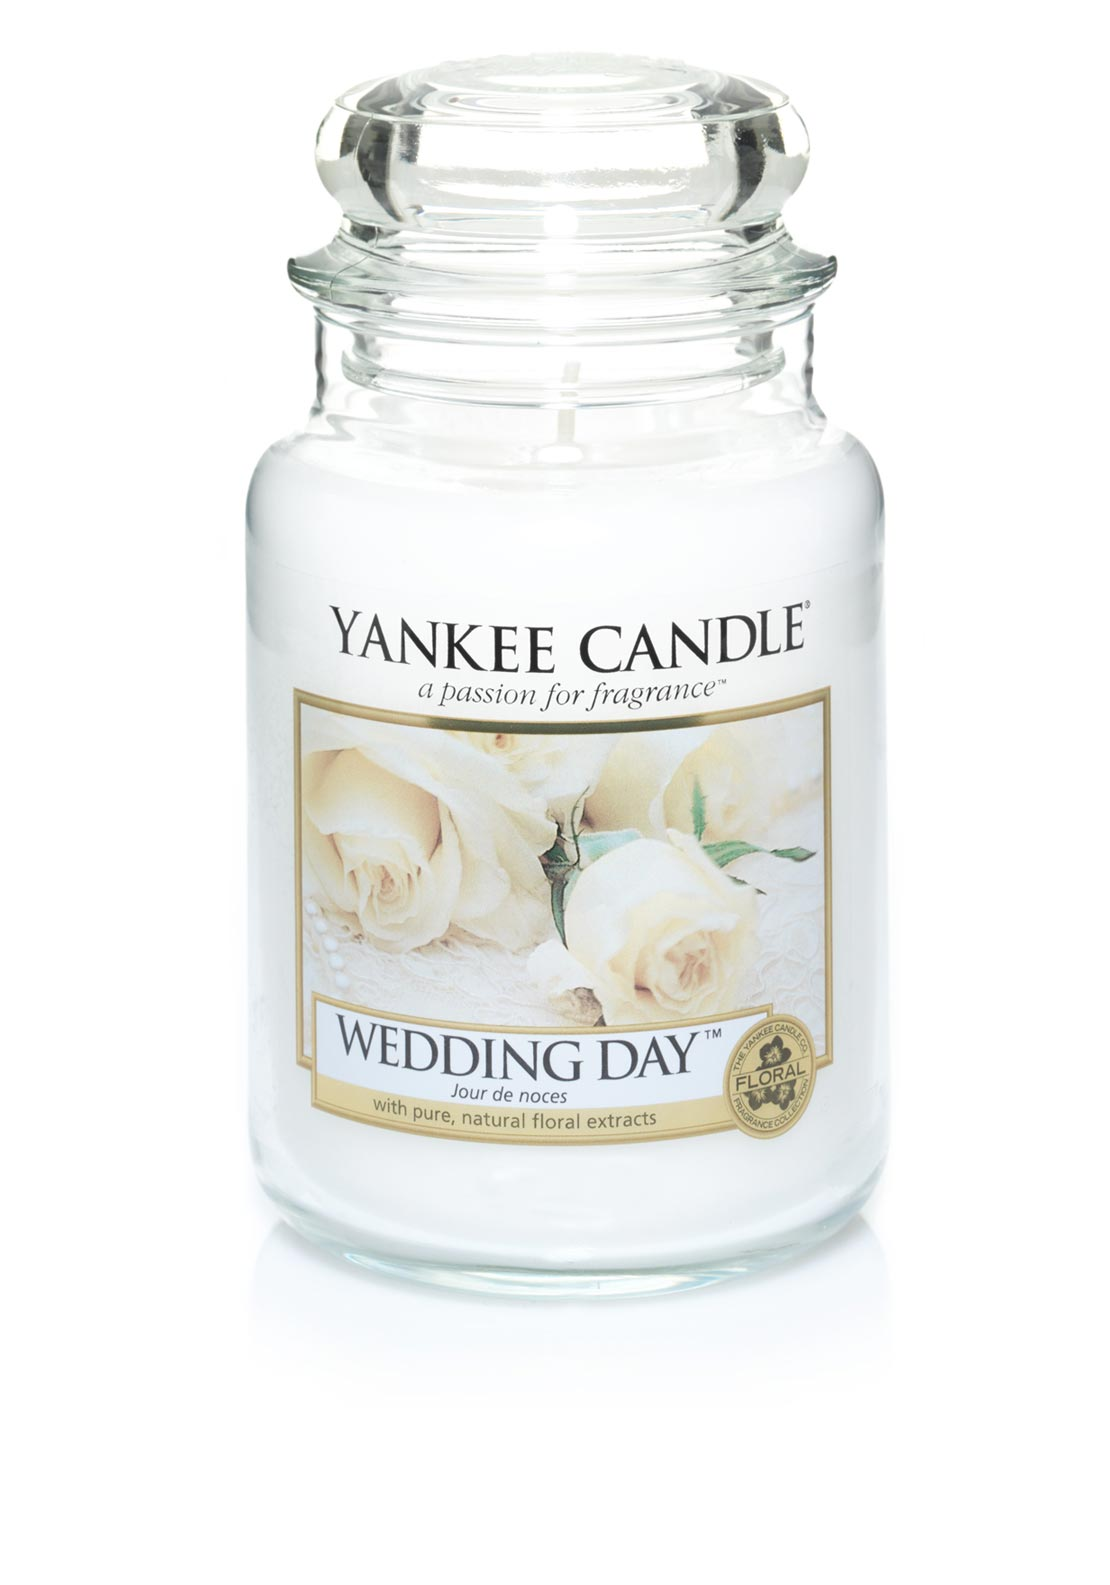 Yankee Candle Large Classic Jar, Wedding Day